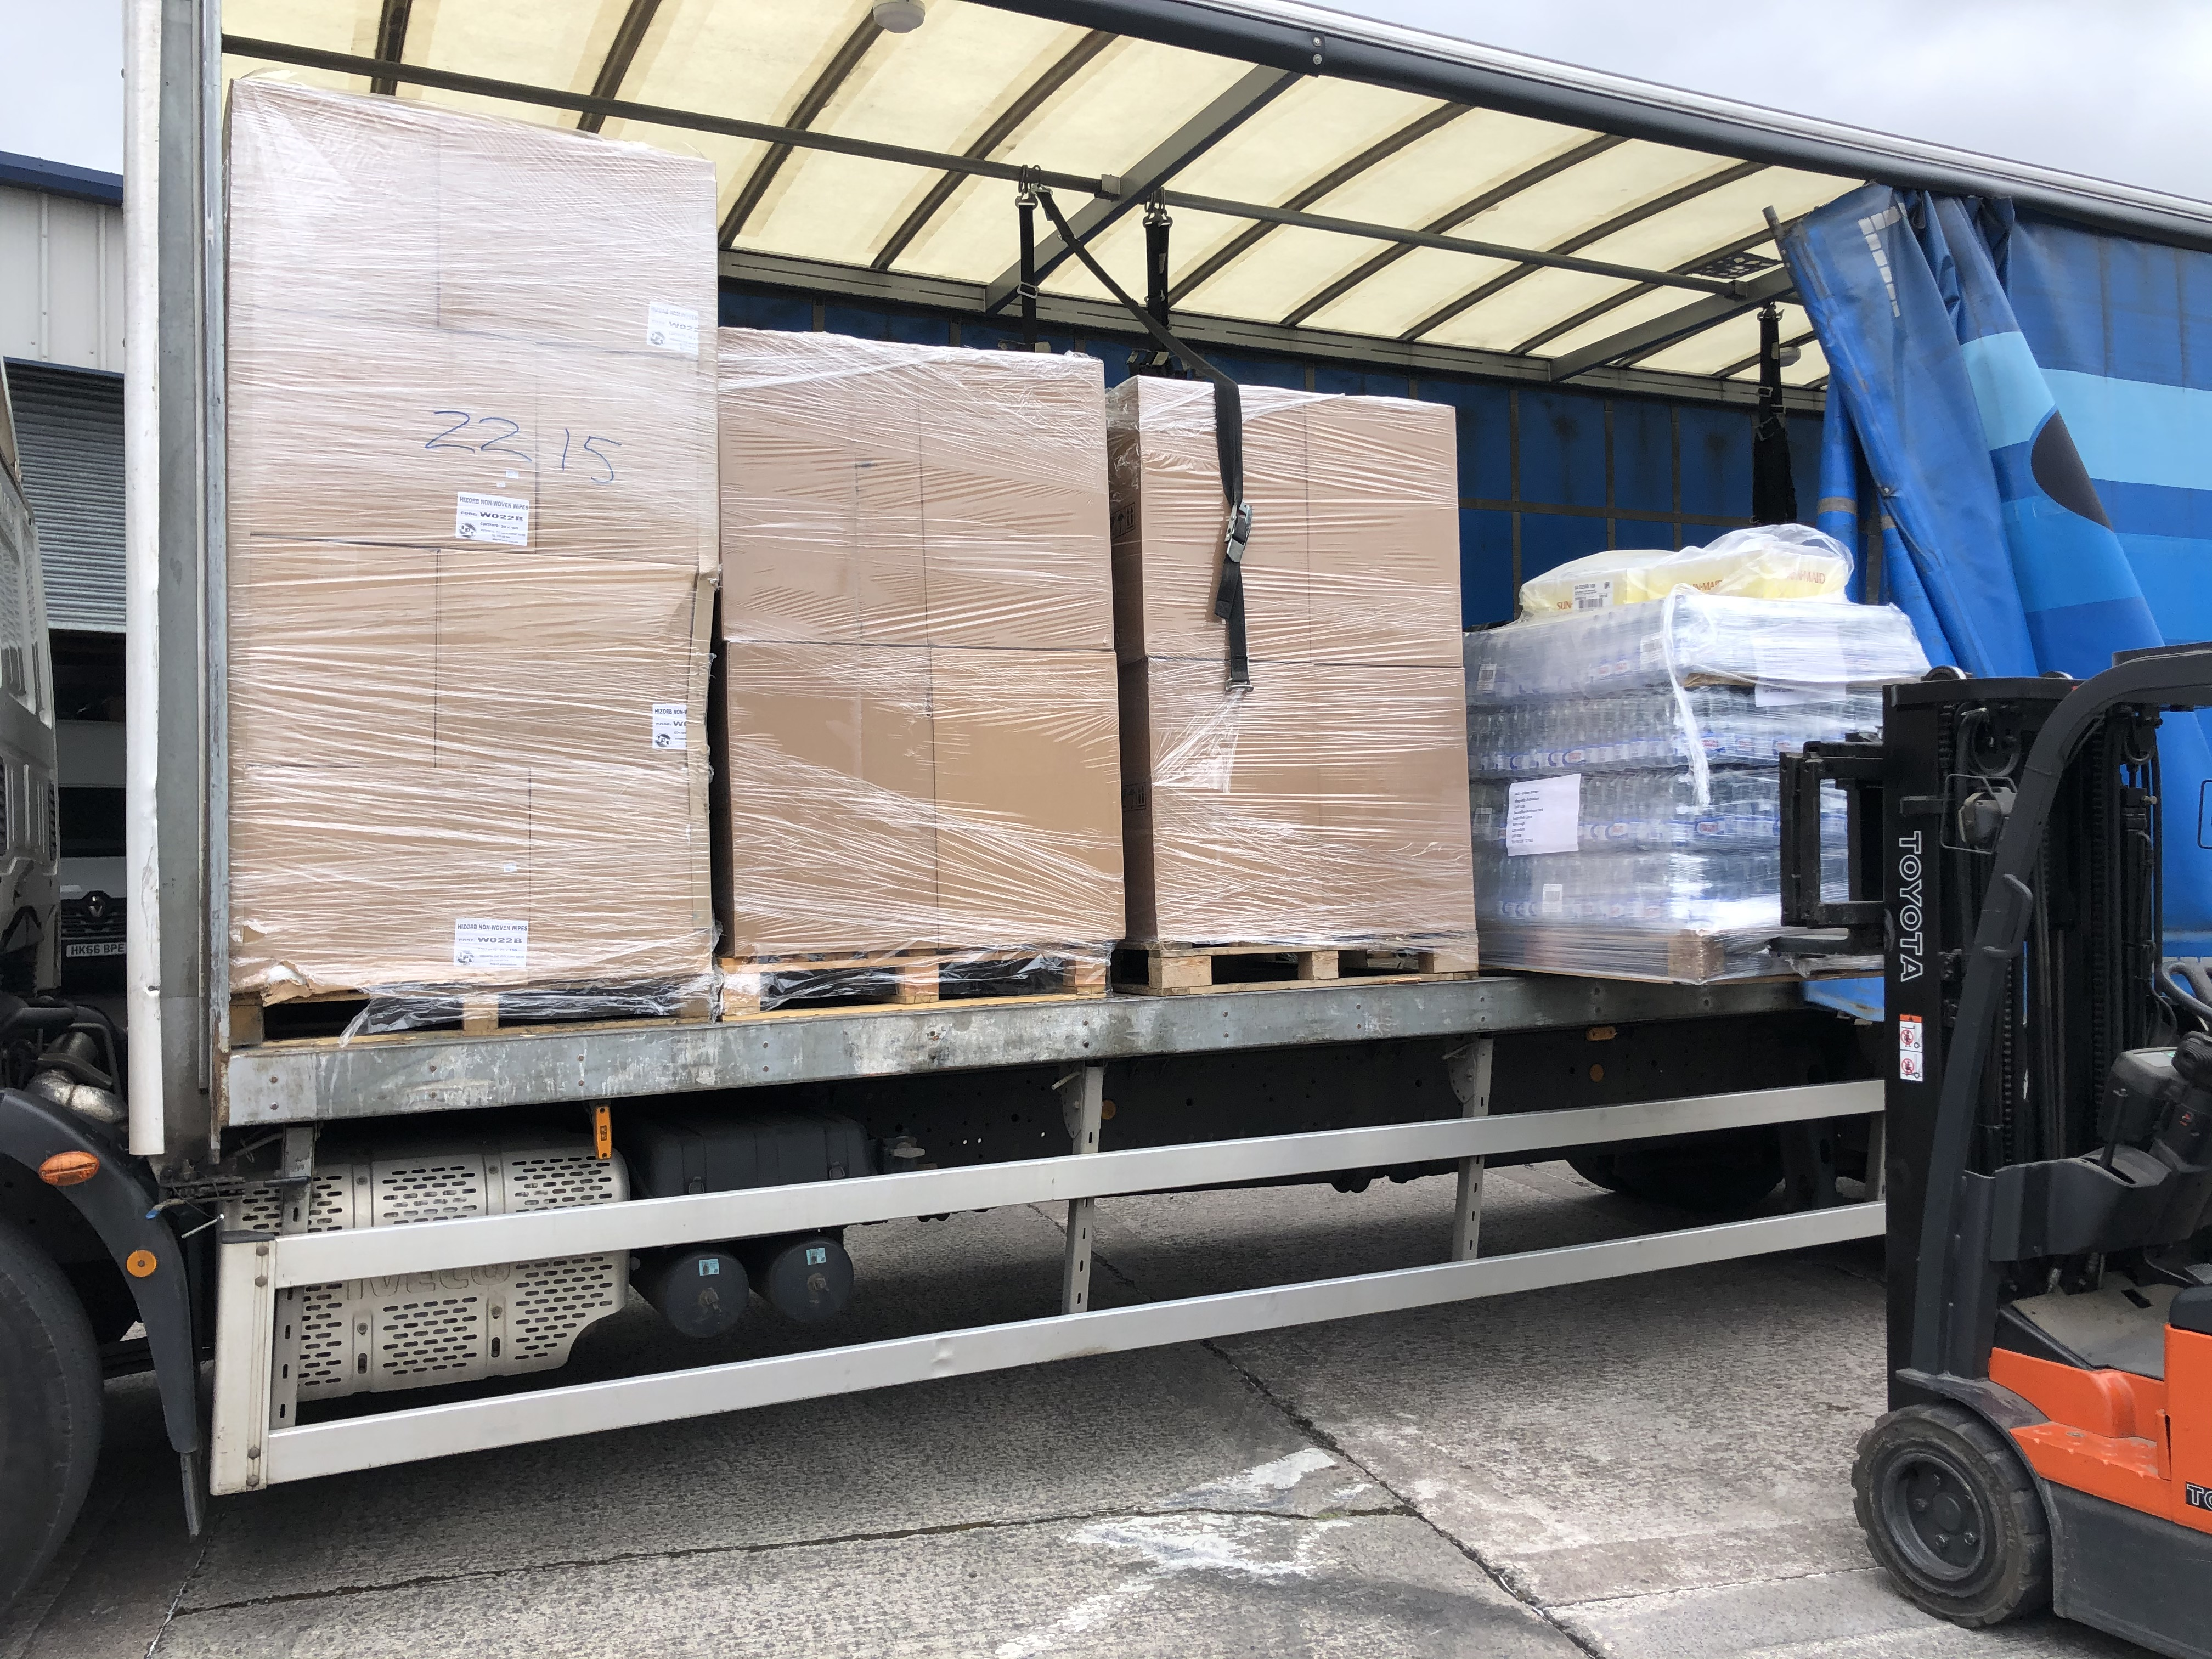 The delivery from Magnetic Activiation arrives at Southport Hospital